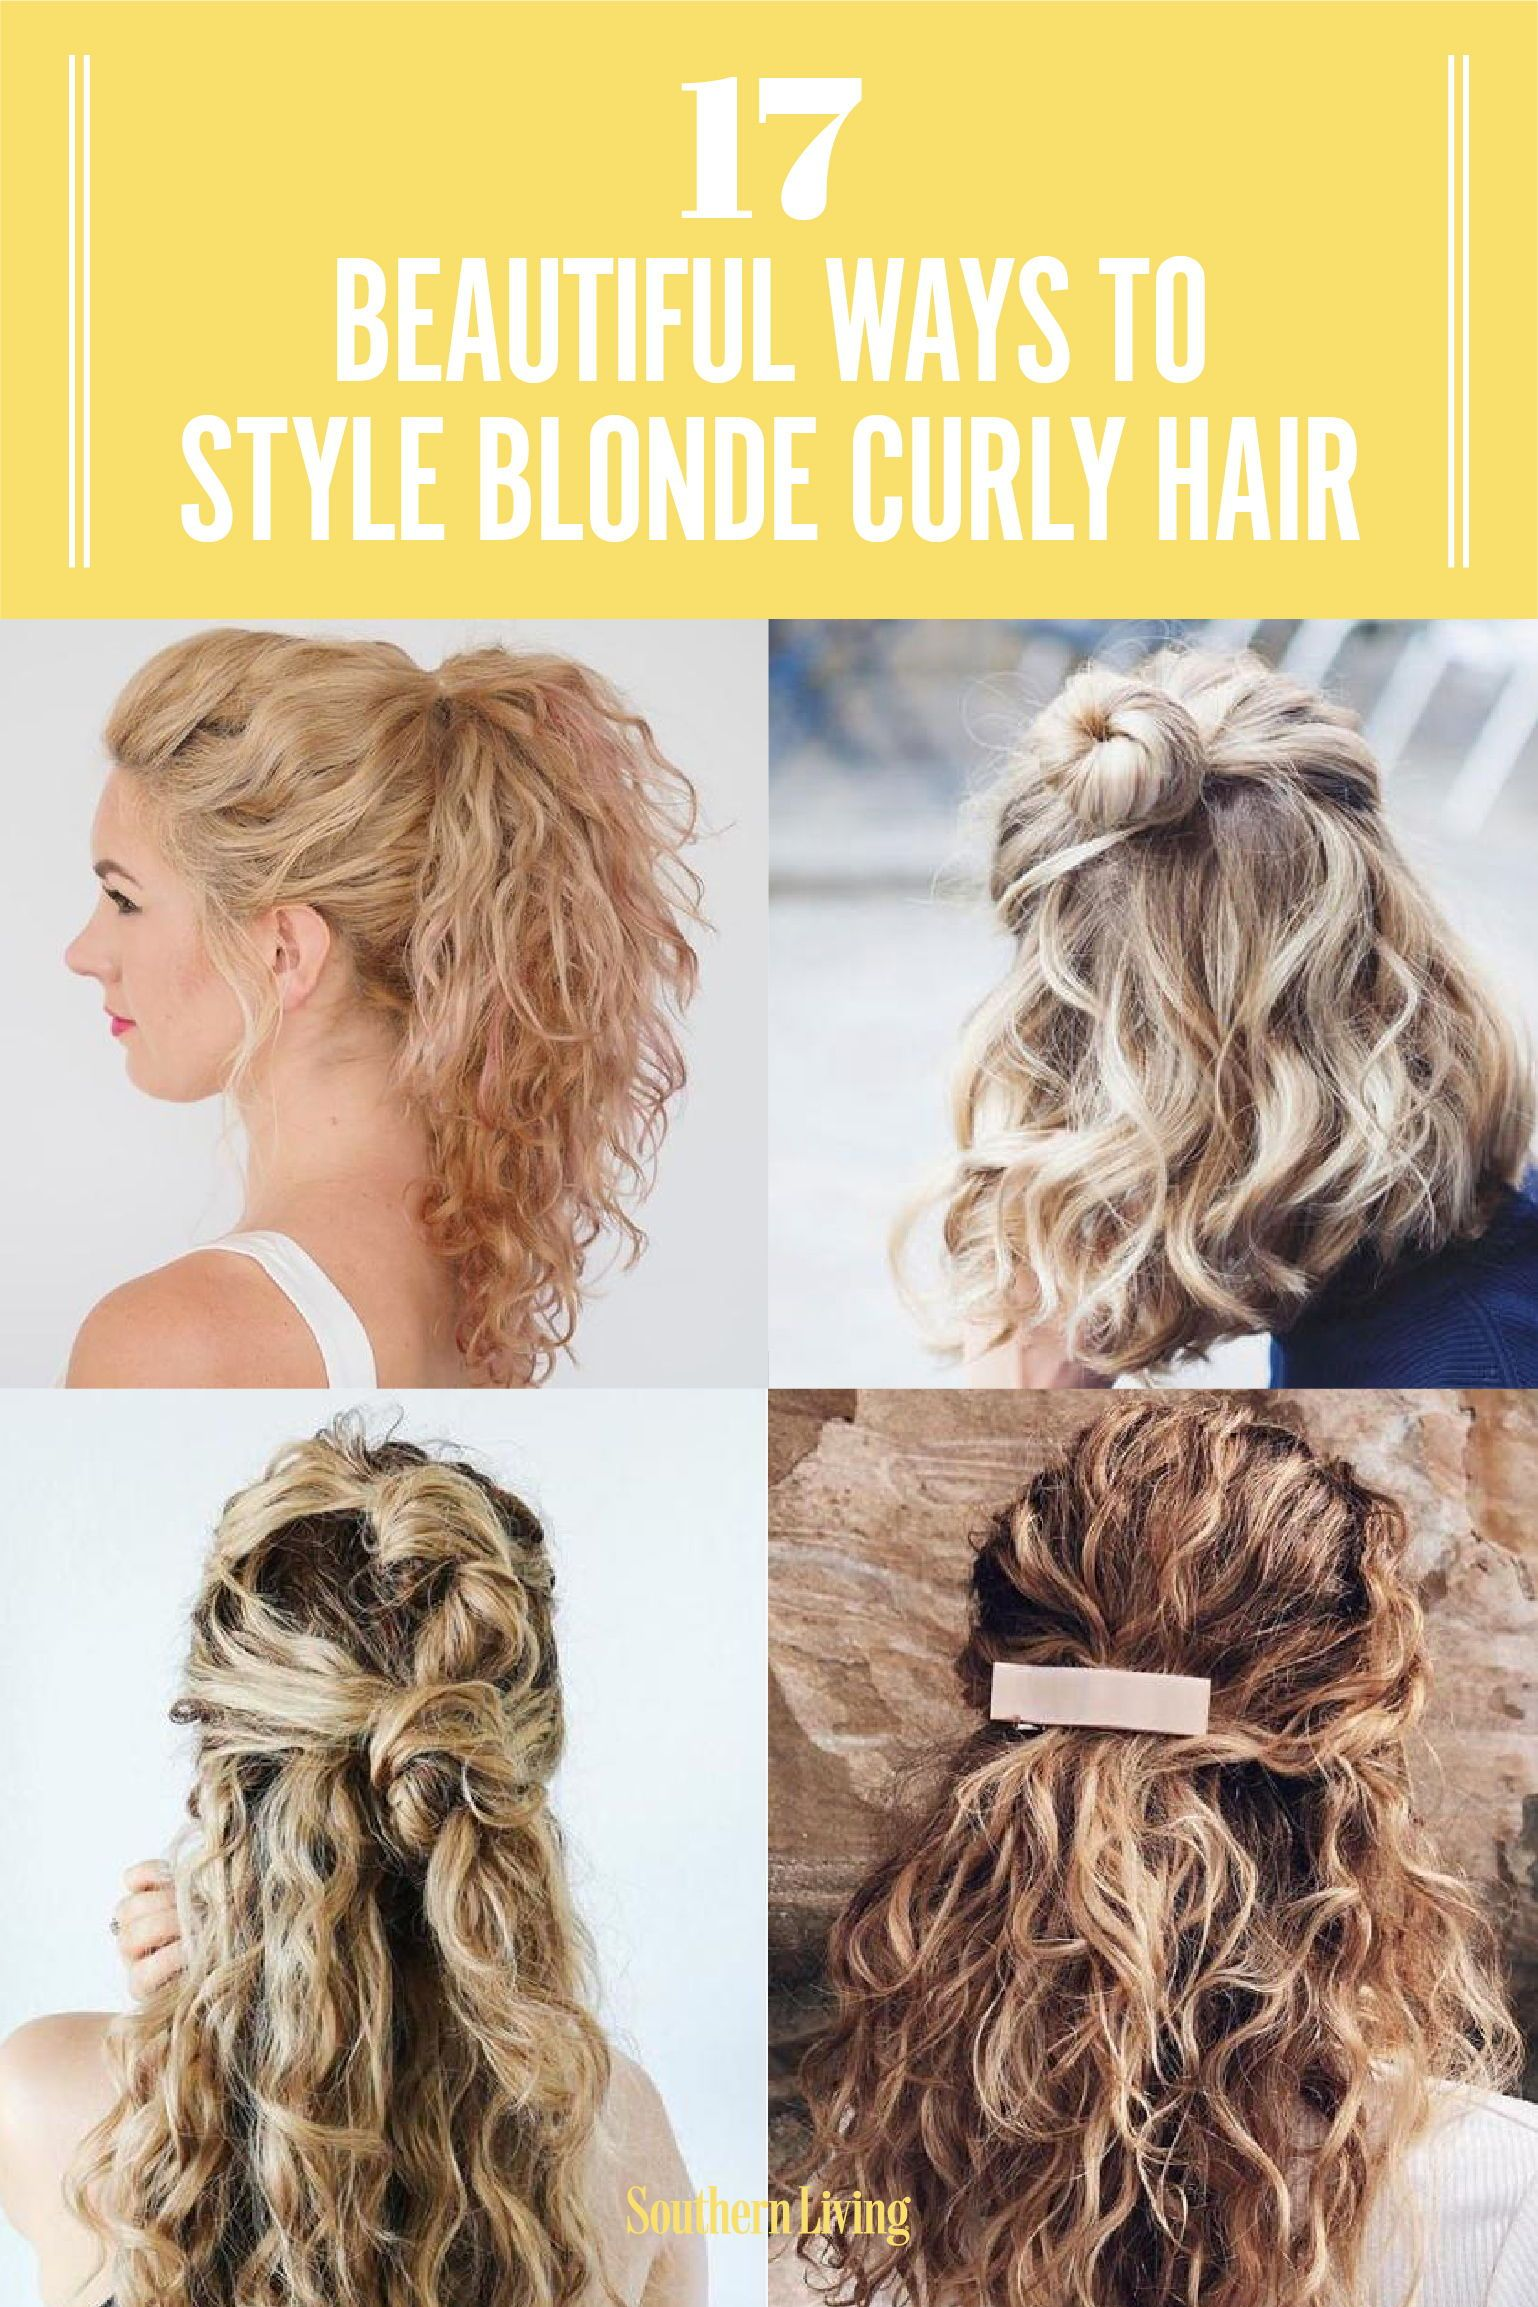 17 Beautiful Ways To Style Blonde Curly Hair Curly Hair Styles Easy Blonde Curly Hair Curly Hair Styles Naturally